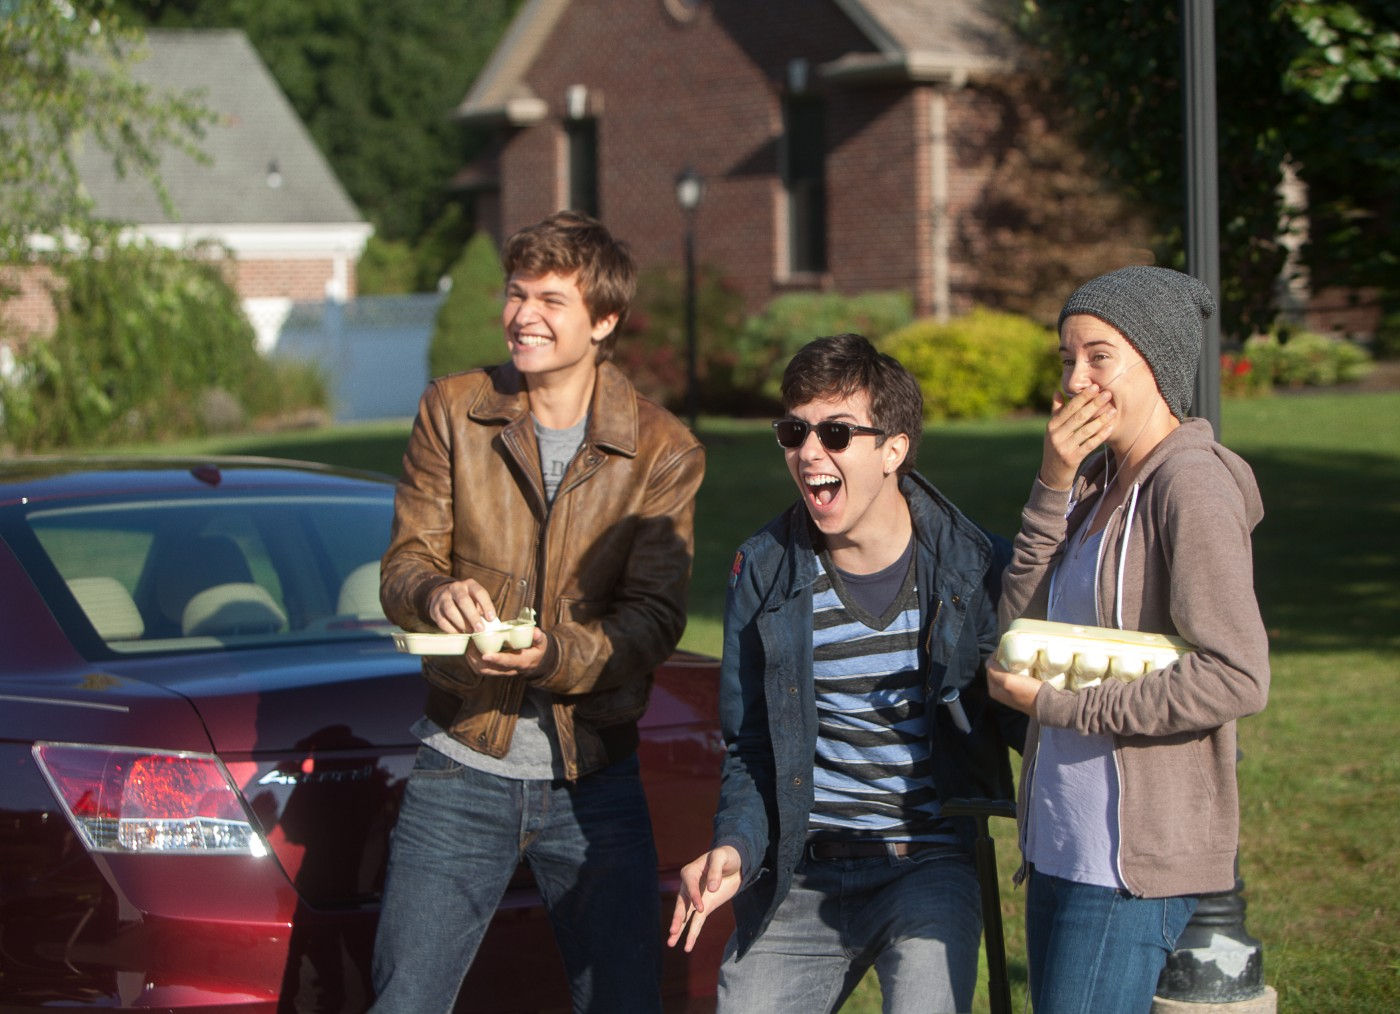 Fault in Our Stars - Foto - 05 - Augustus (Ansel Elgort), Isaac (Nat Wolff), Hazel (Shailene Woodley)